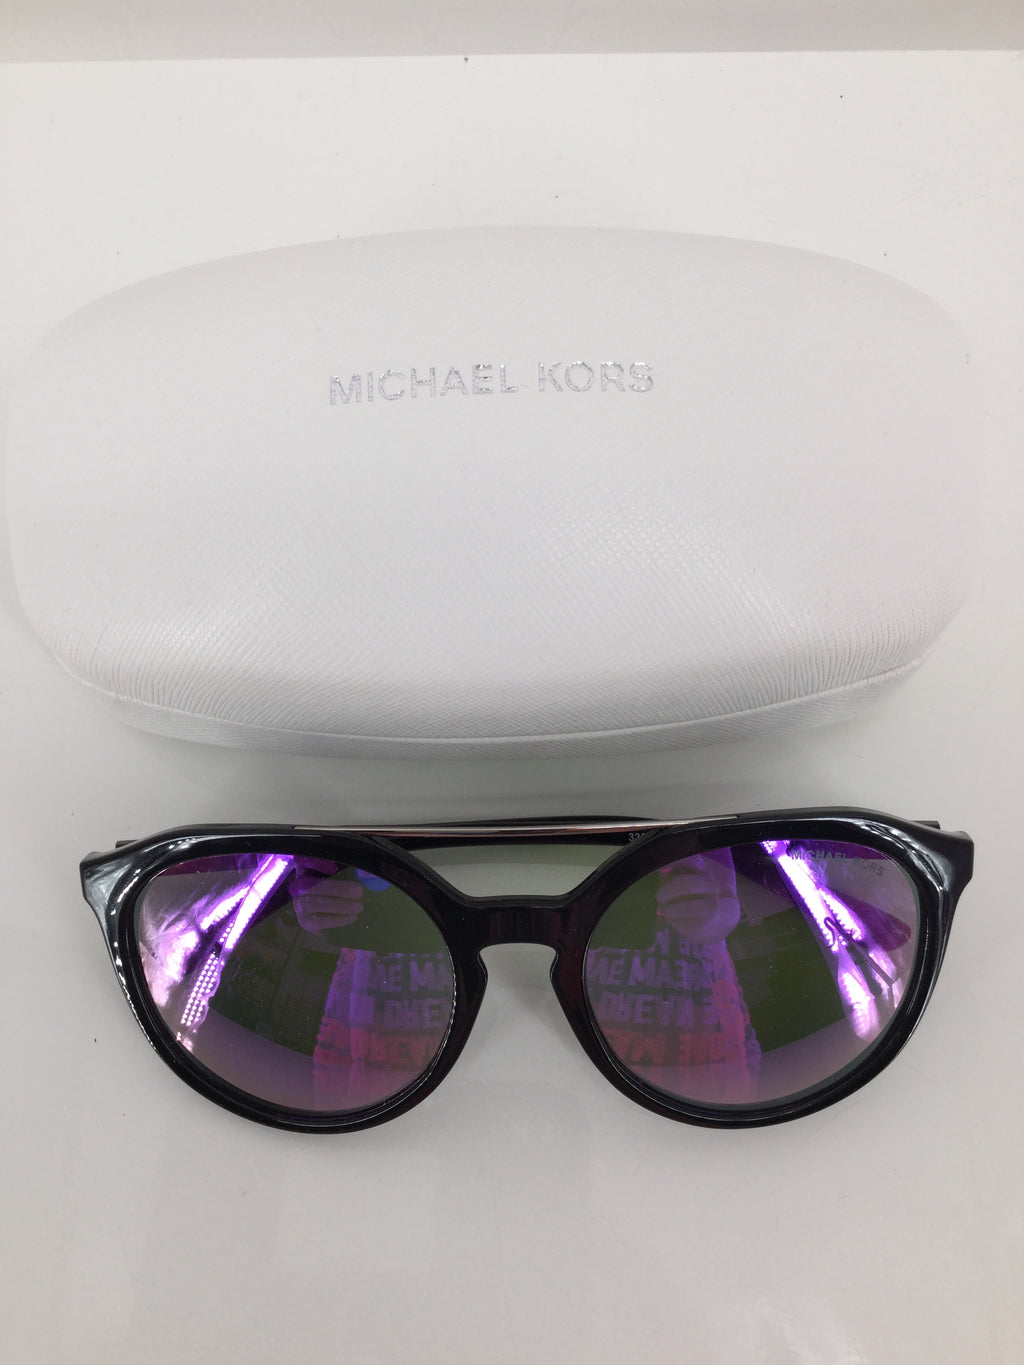 Michael Kors Sunglasses, Black, With Case